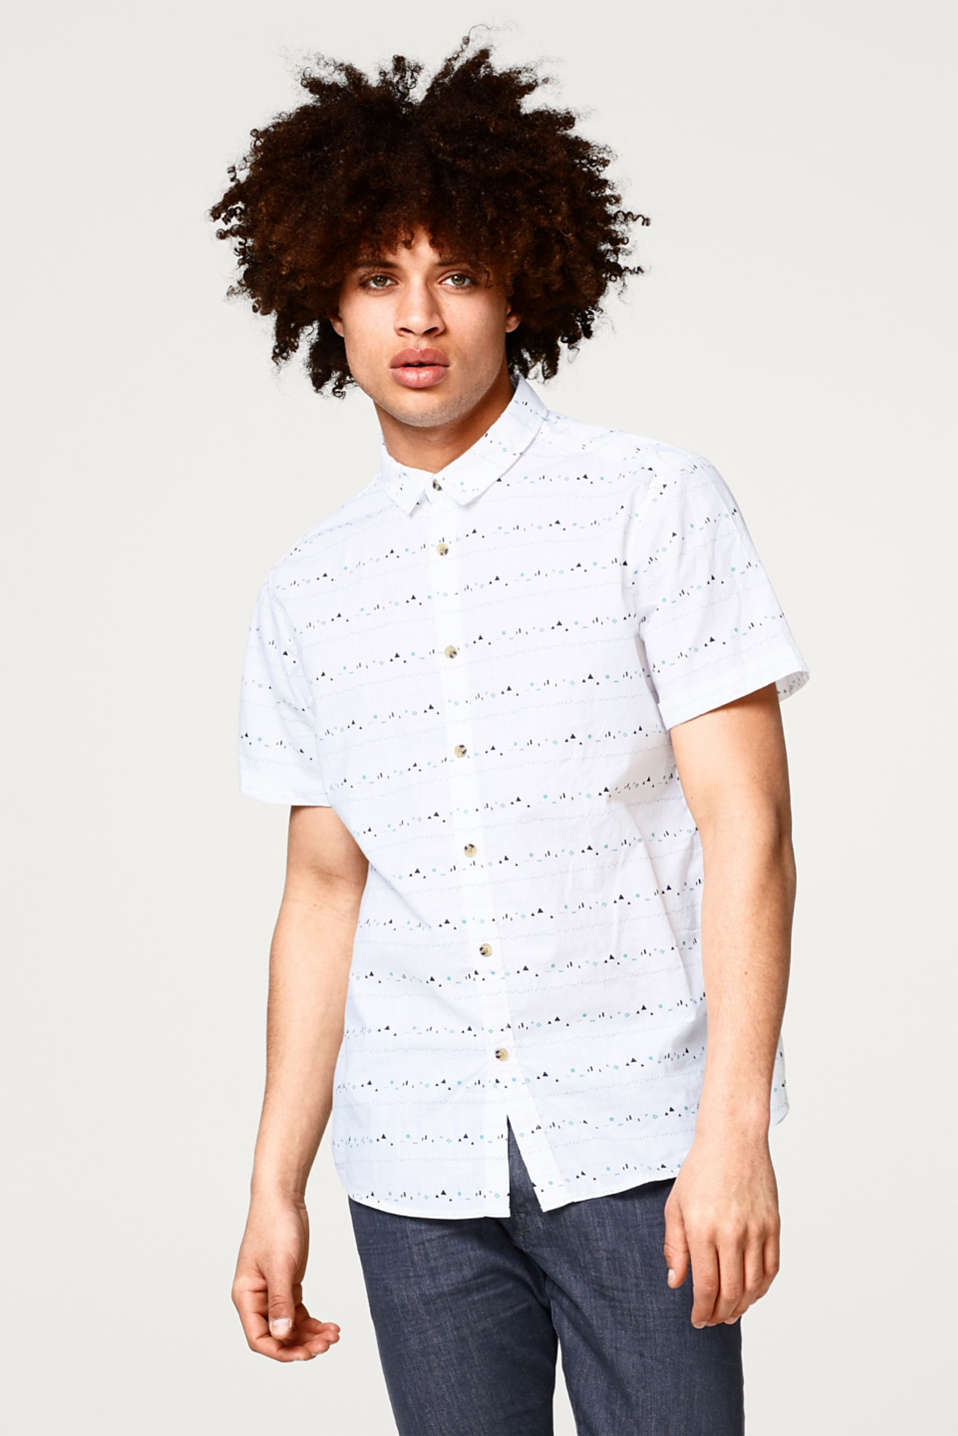 edc - Short sleeve shirt with a graphic minimalist print